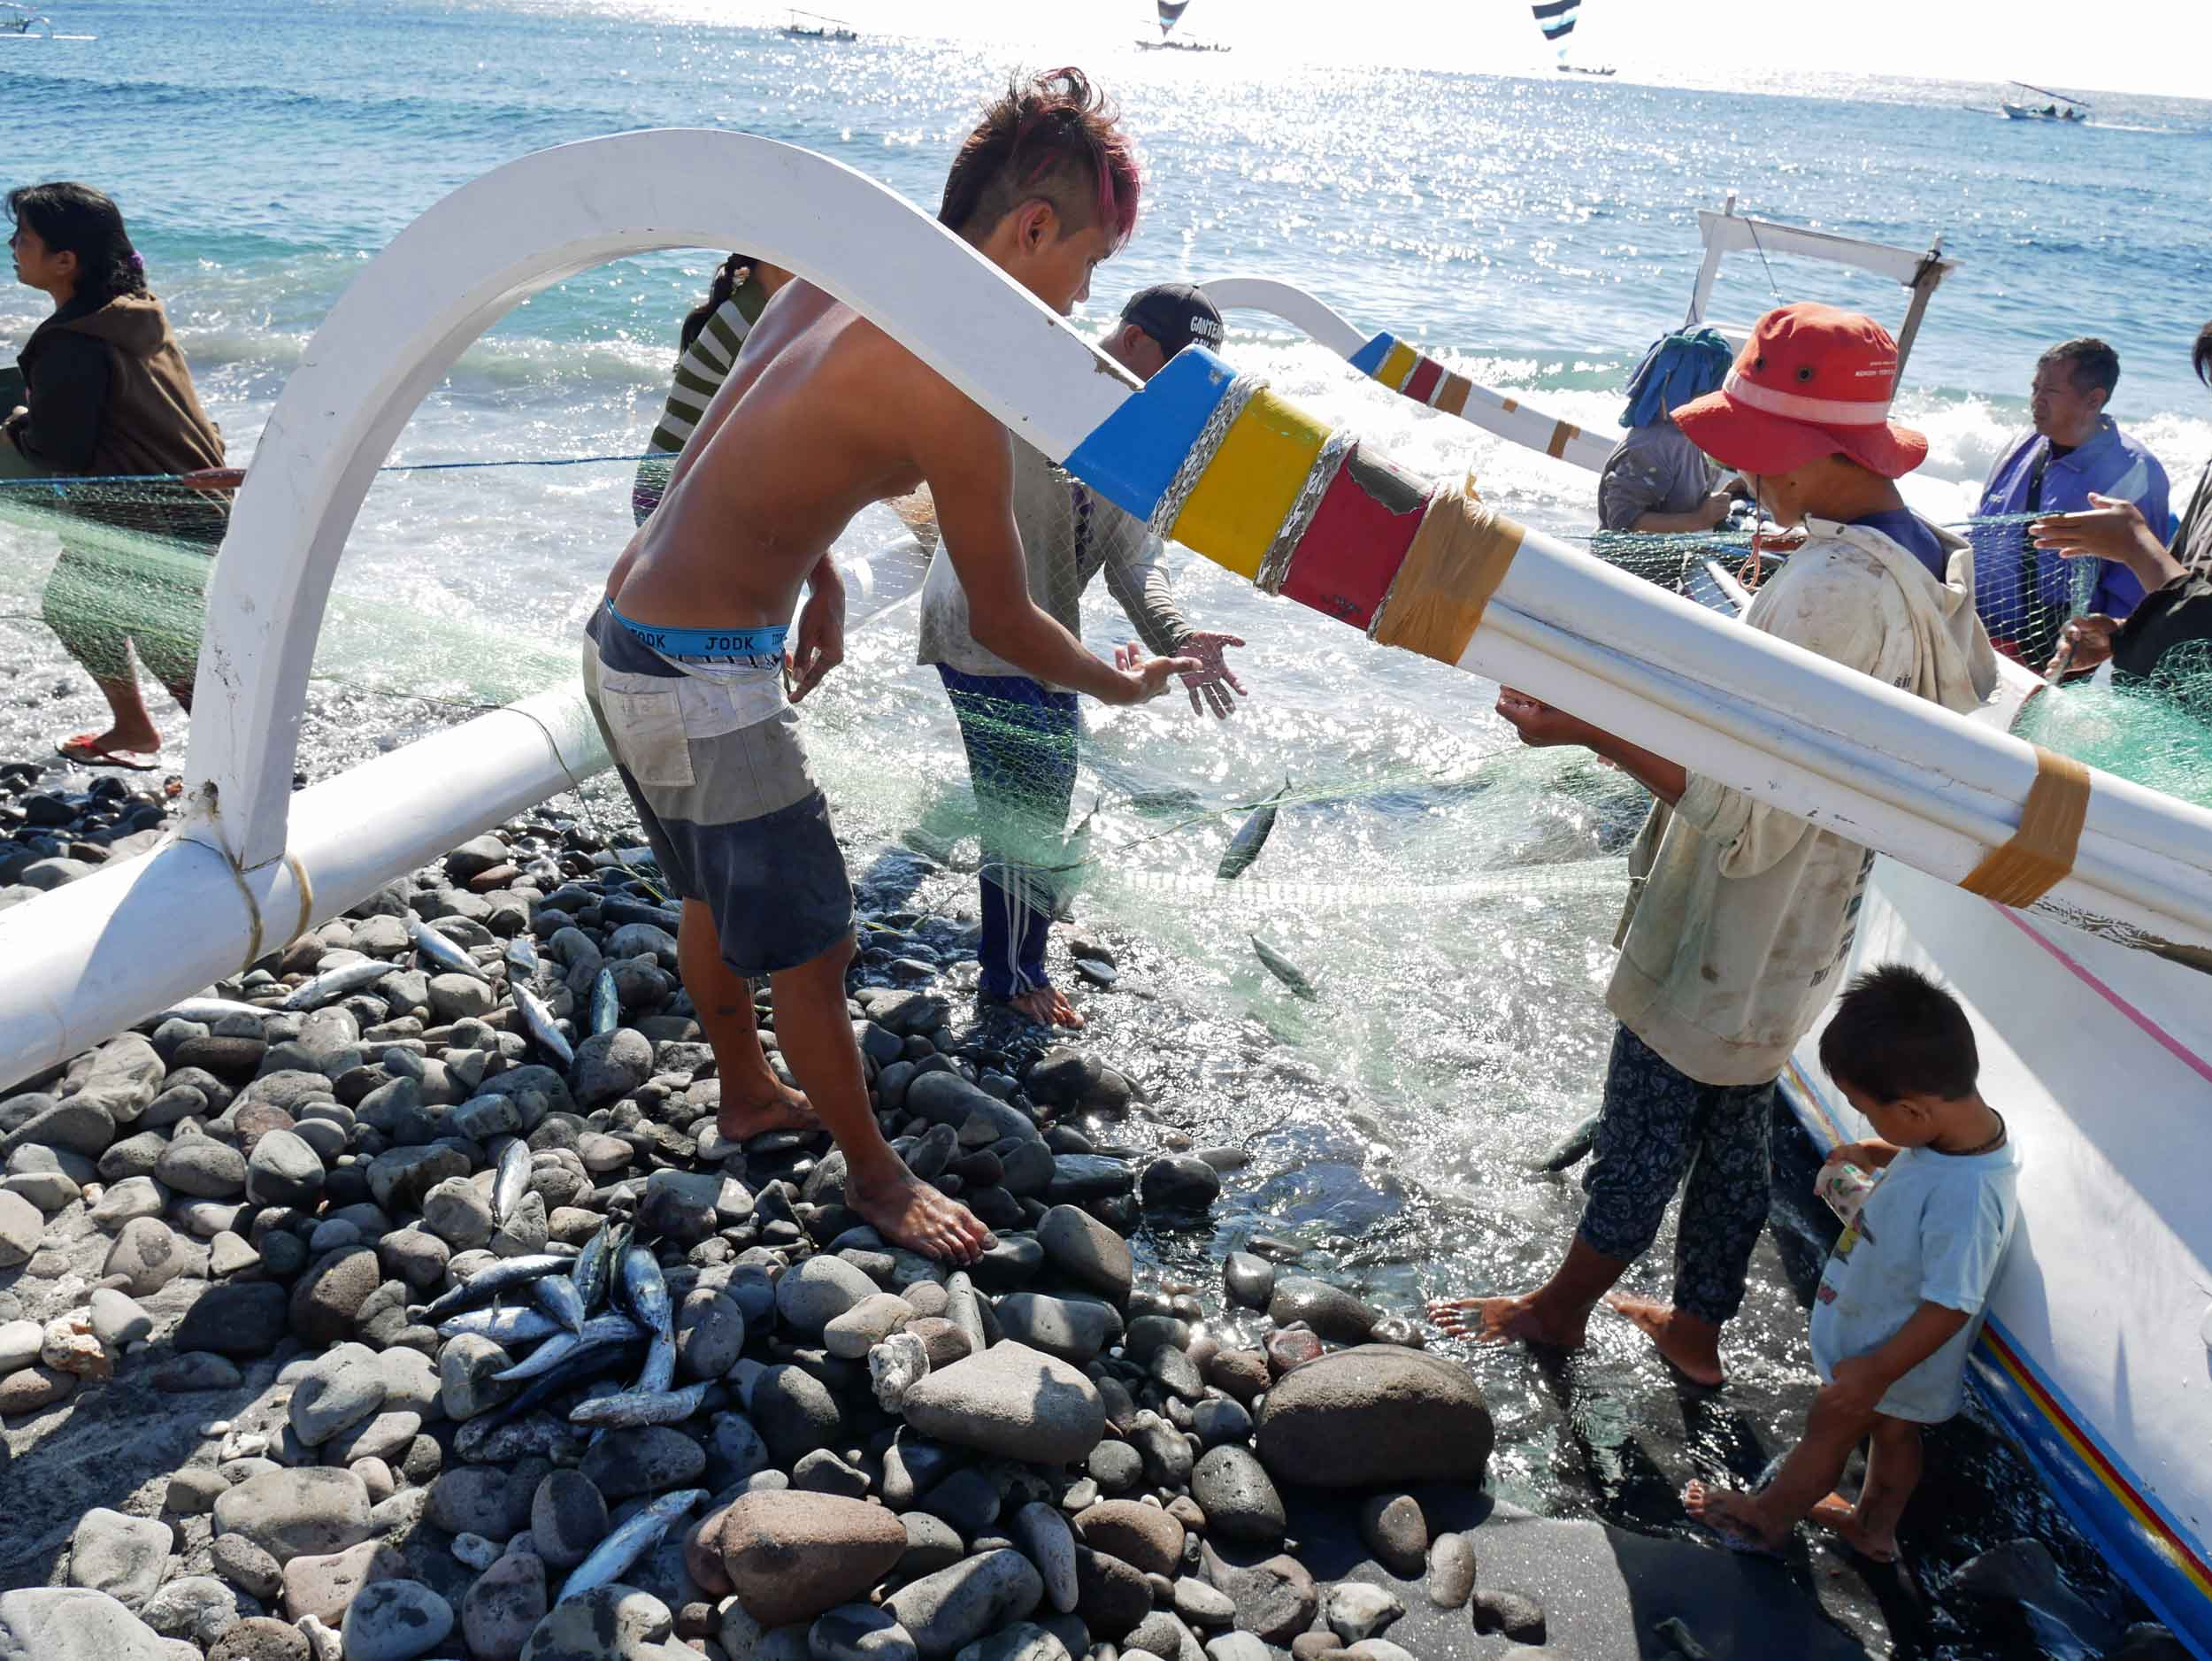 Once ashore, the fishermen unspool their nets and place the fish into buckets or bags.